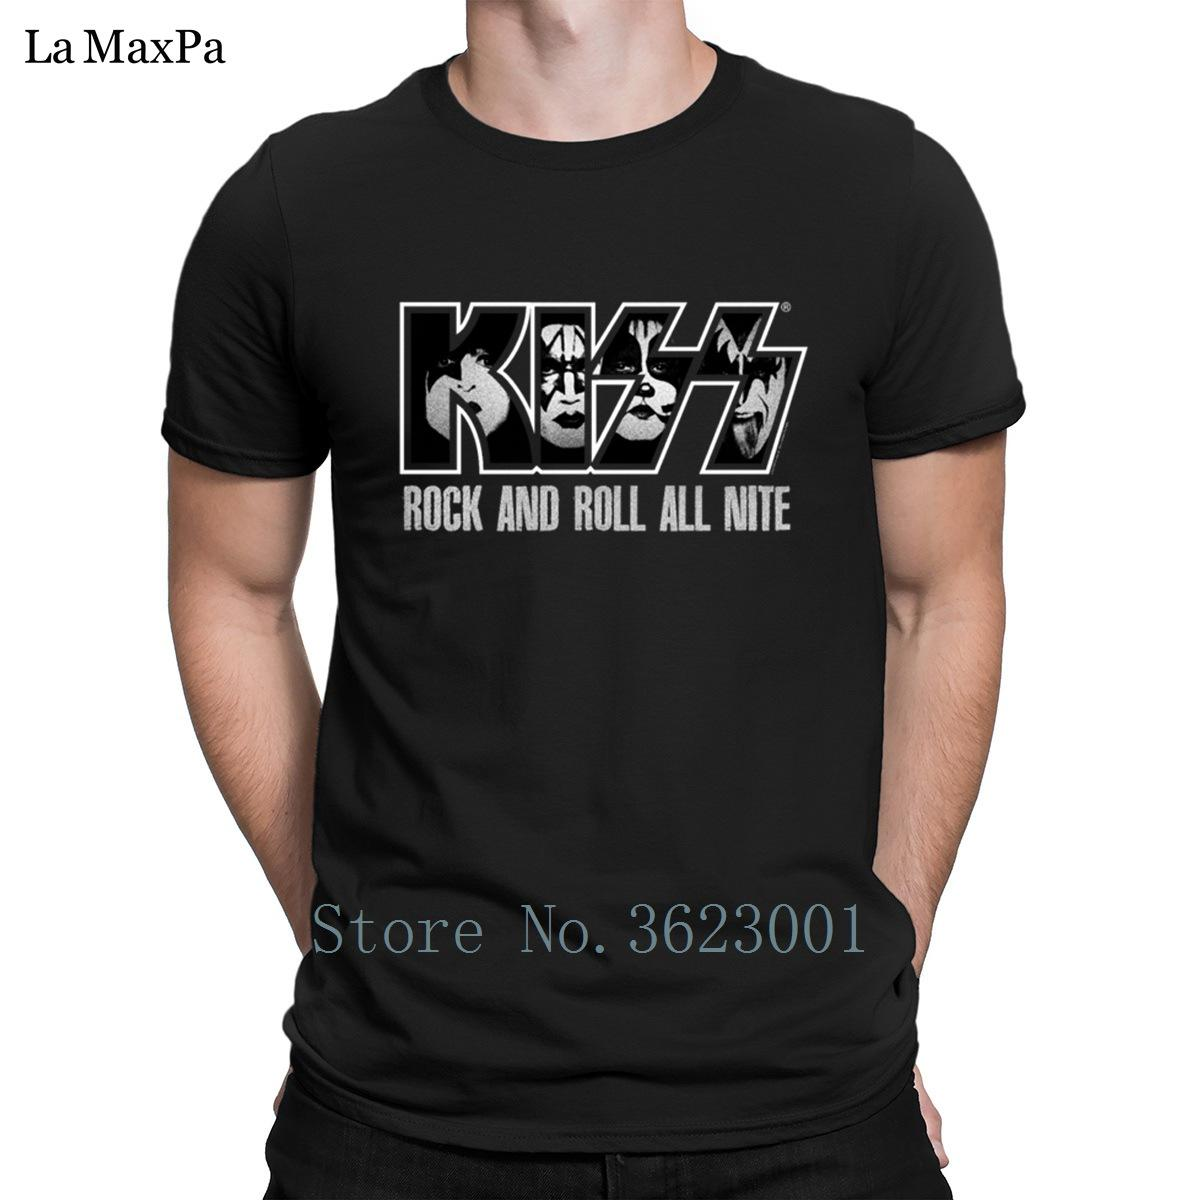 7d13944db Customize Slim T Shirt For Men Summer Kiss Rock And Roll All Night T Shirt  Man Popular Branded Tshirt Crew Neck Tee Shirt Loose Funny It Shirts  Ridiculous ...